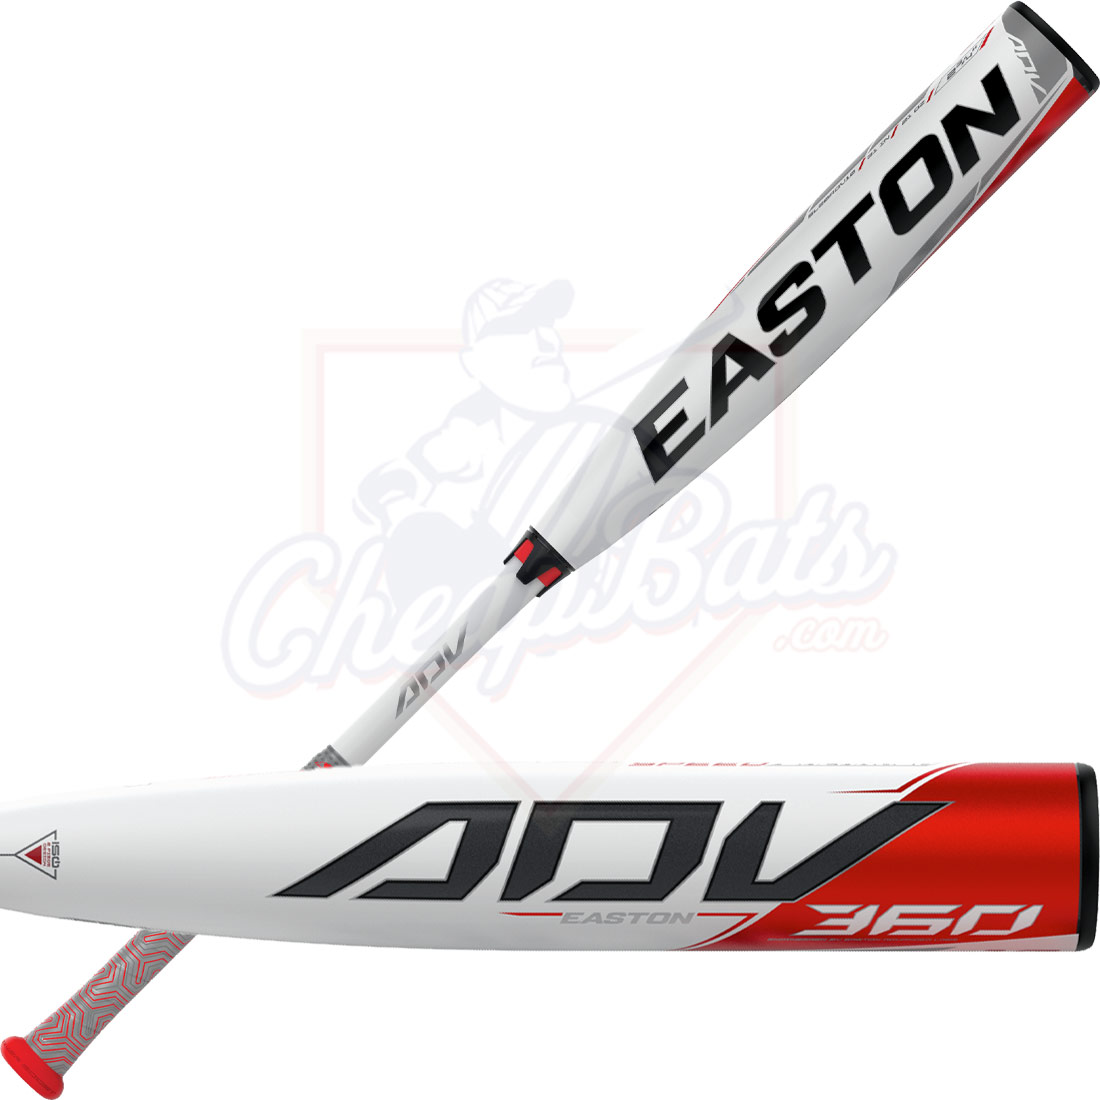 2020 Easton ADV 360 Youth USSSA Baseball Bat